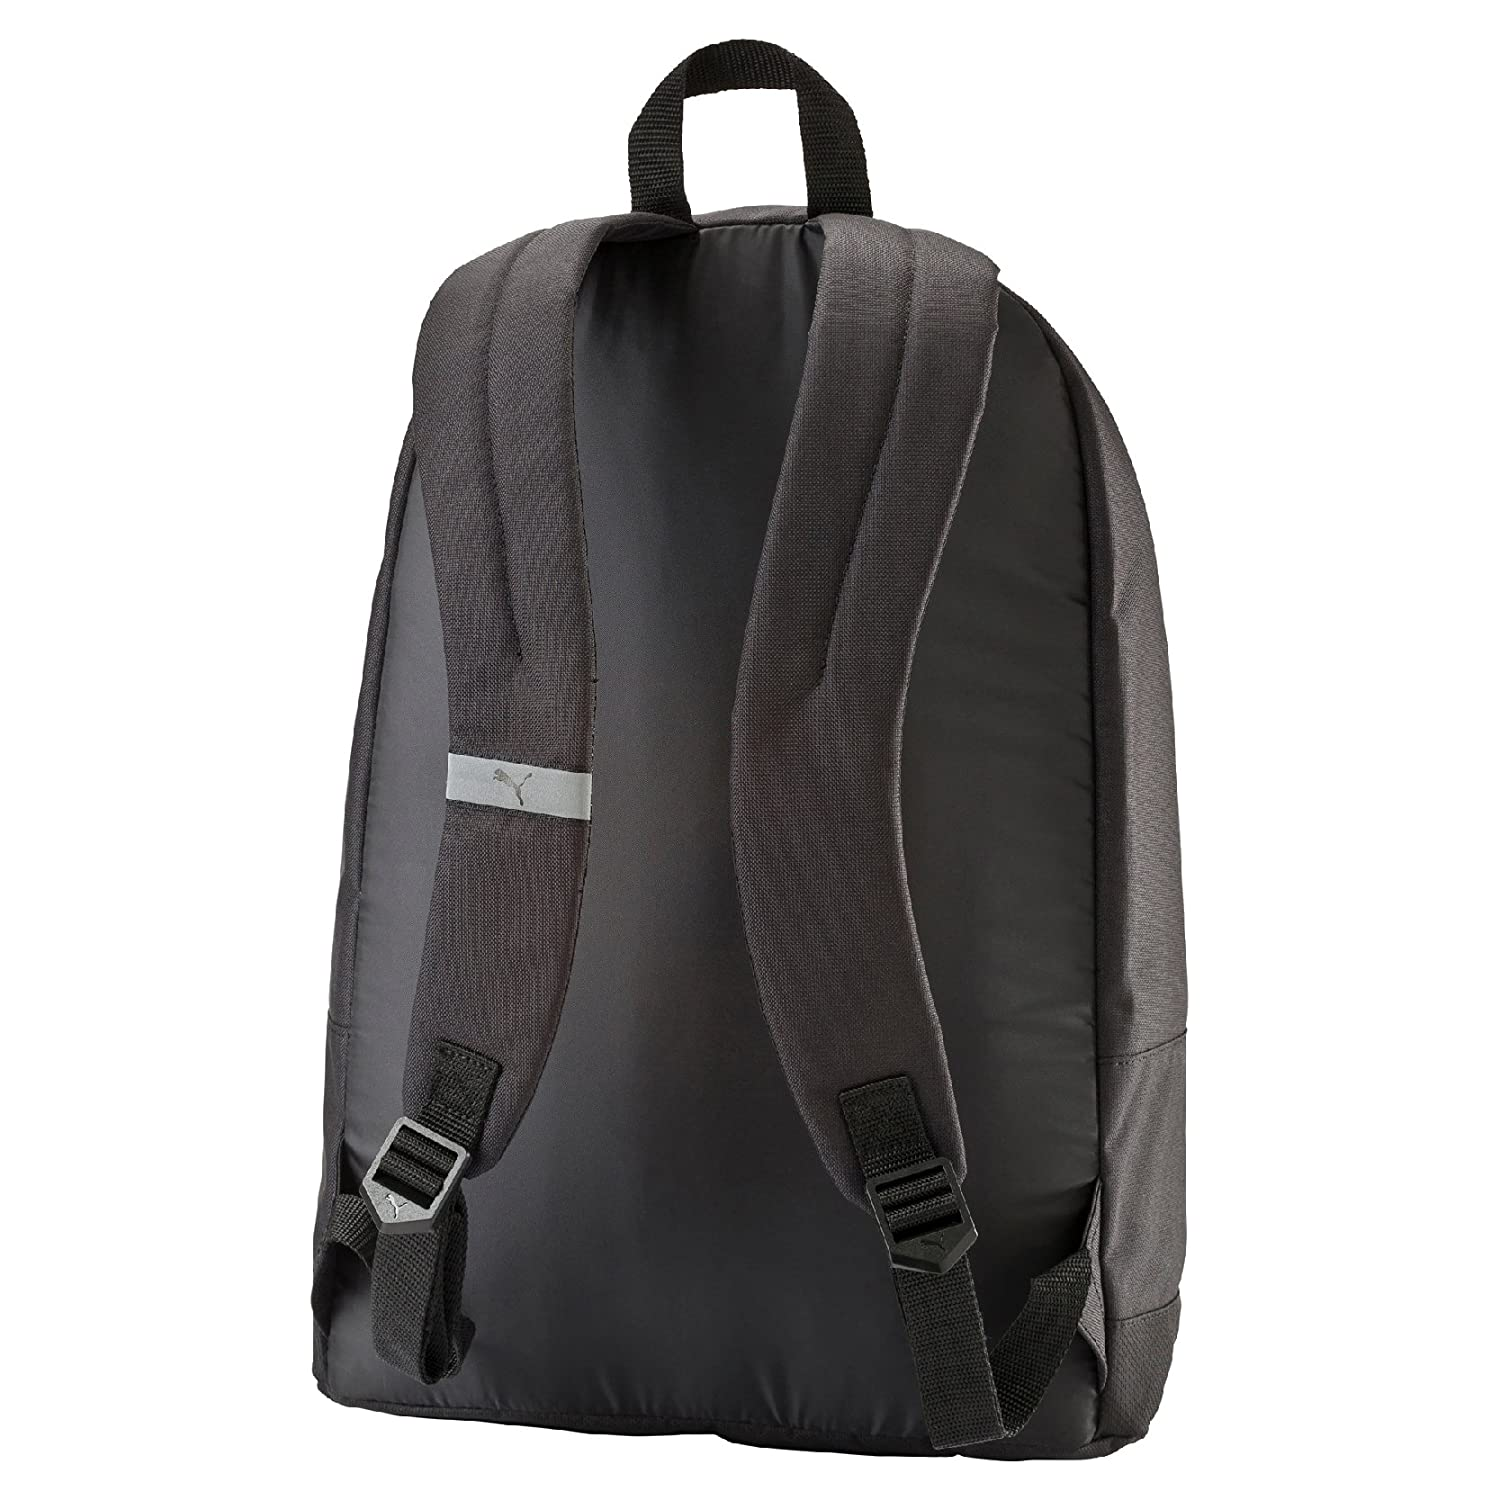 0c2a386efcf0 Puma Black Casual Backpack (7339101)  Amazon.in  Bags